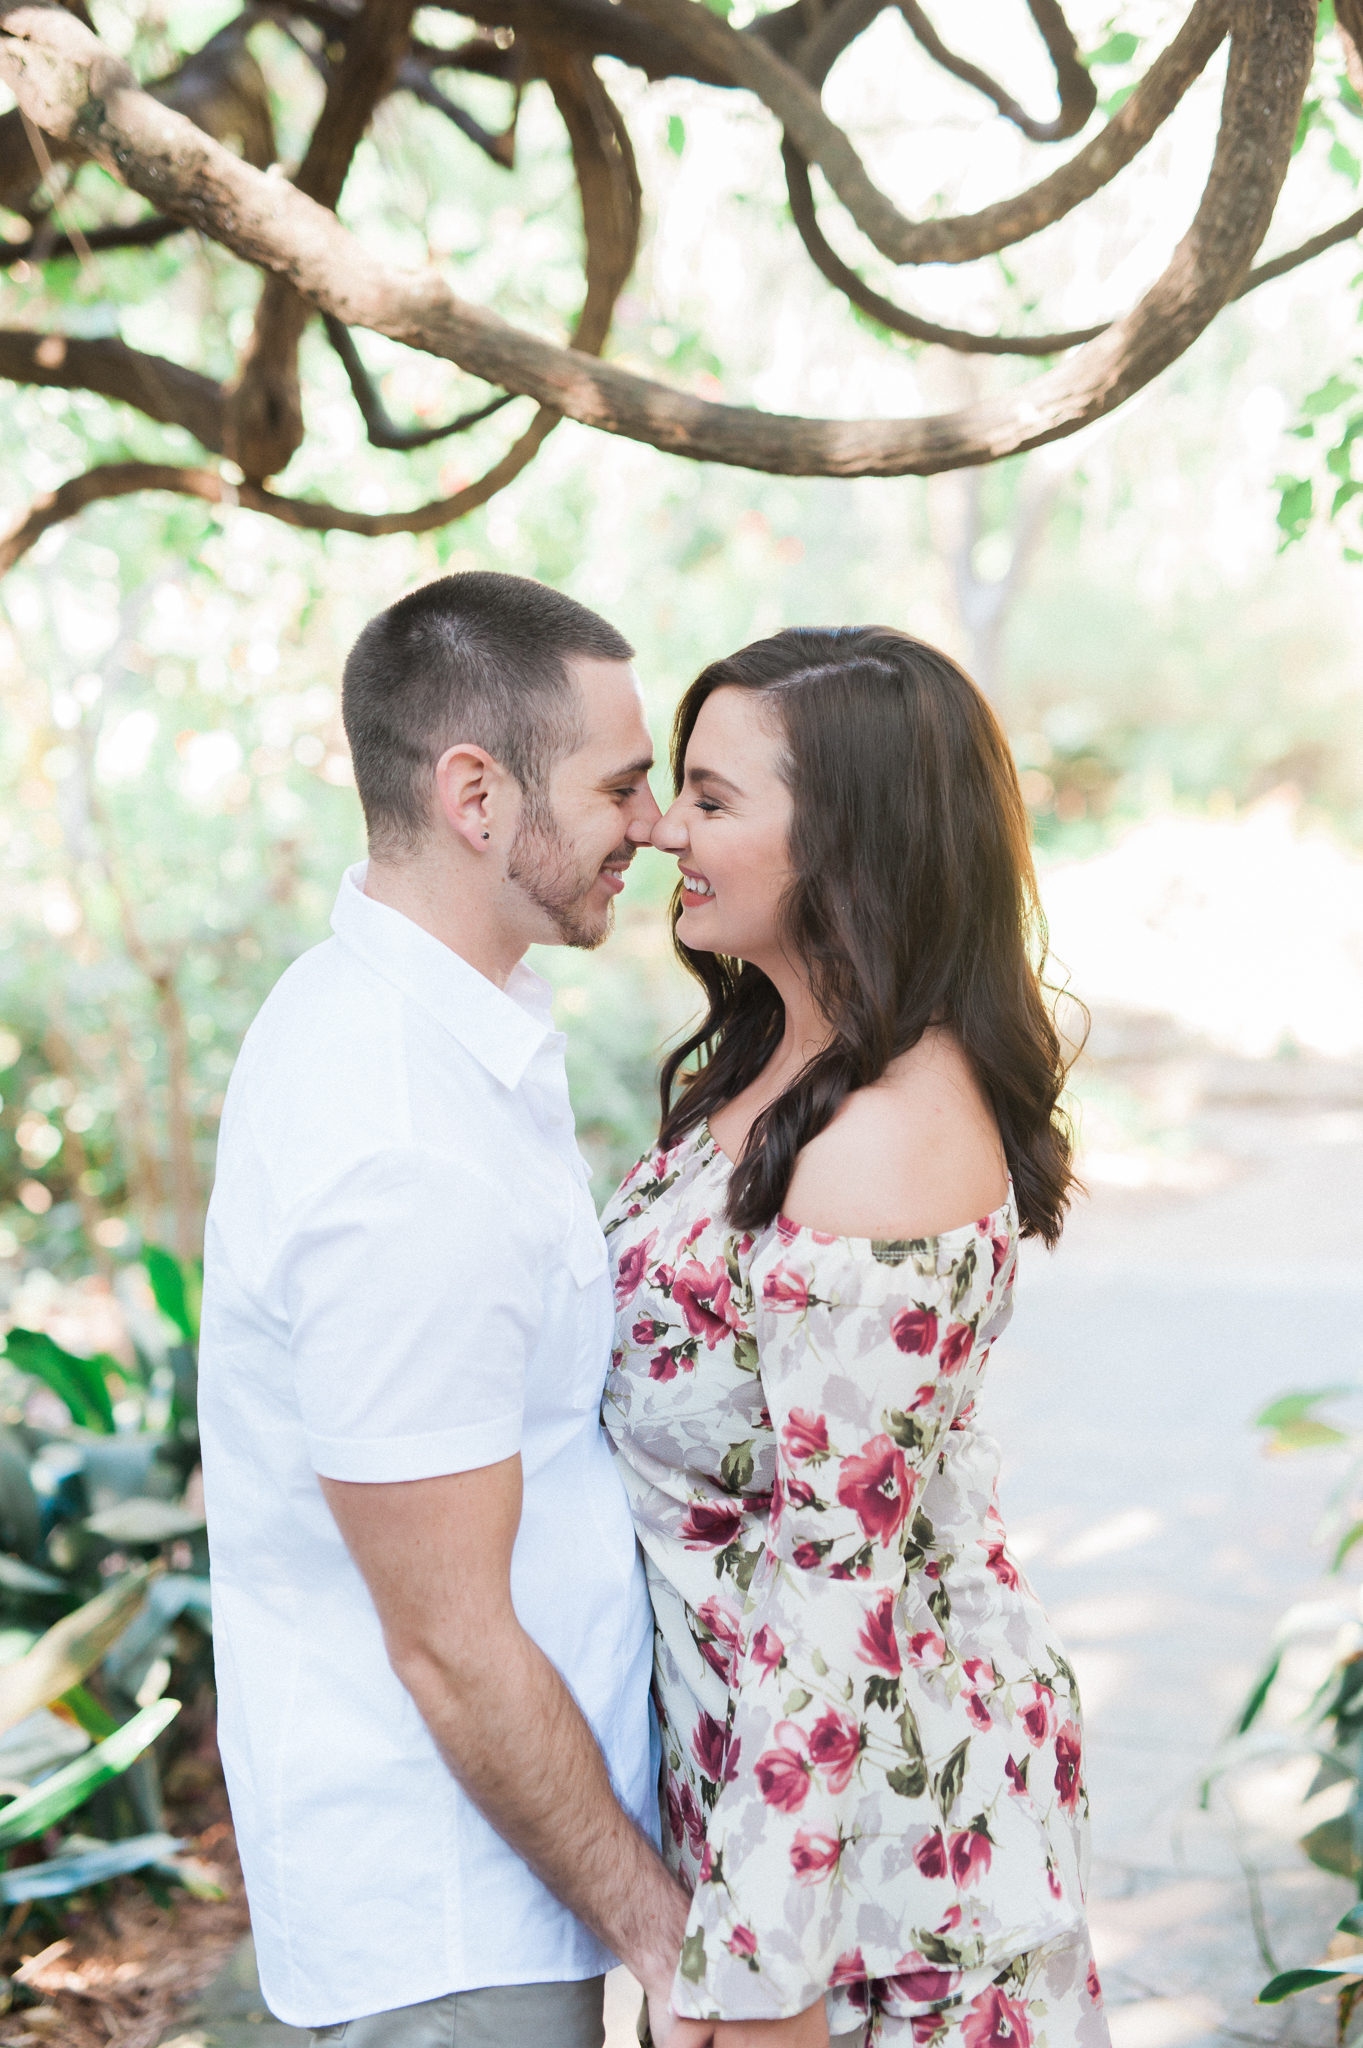 Caitlyn+Mike Engagement Session-WG-59.jpg